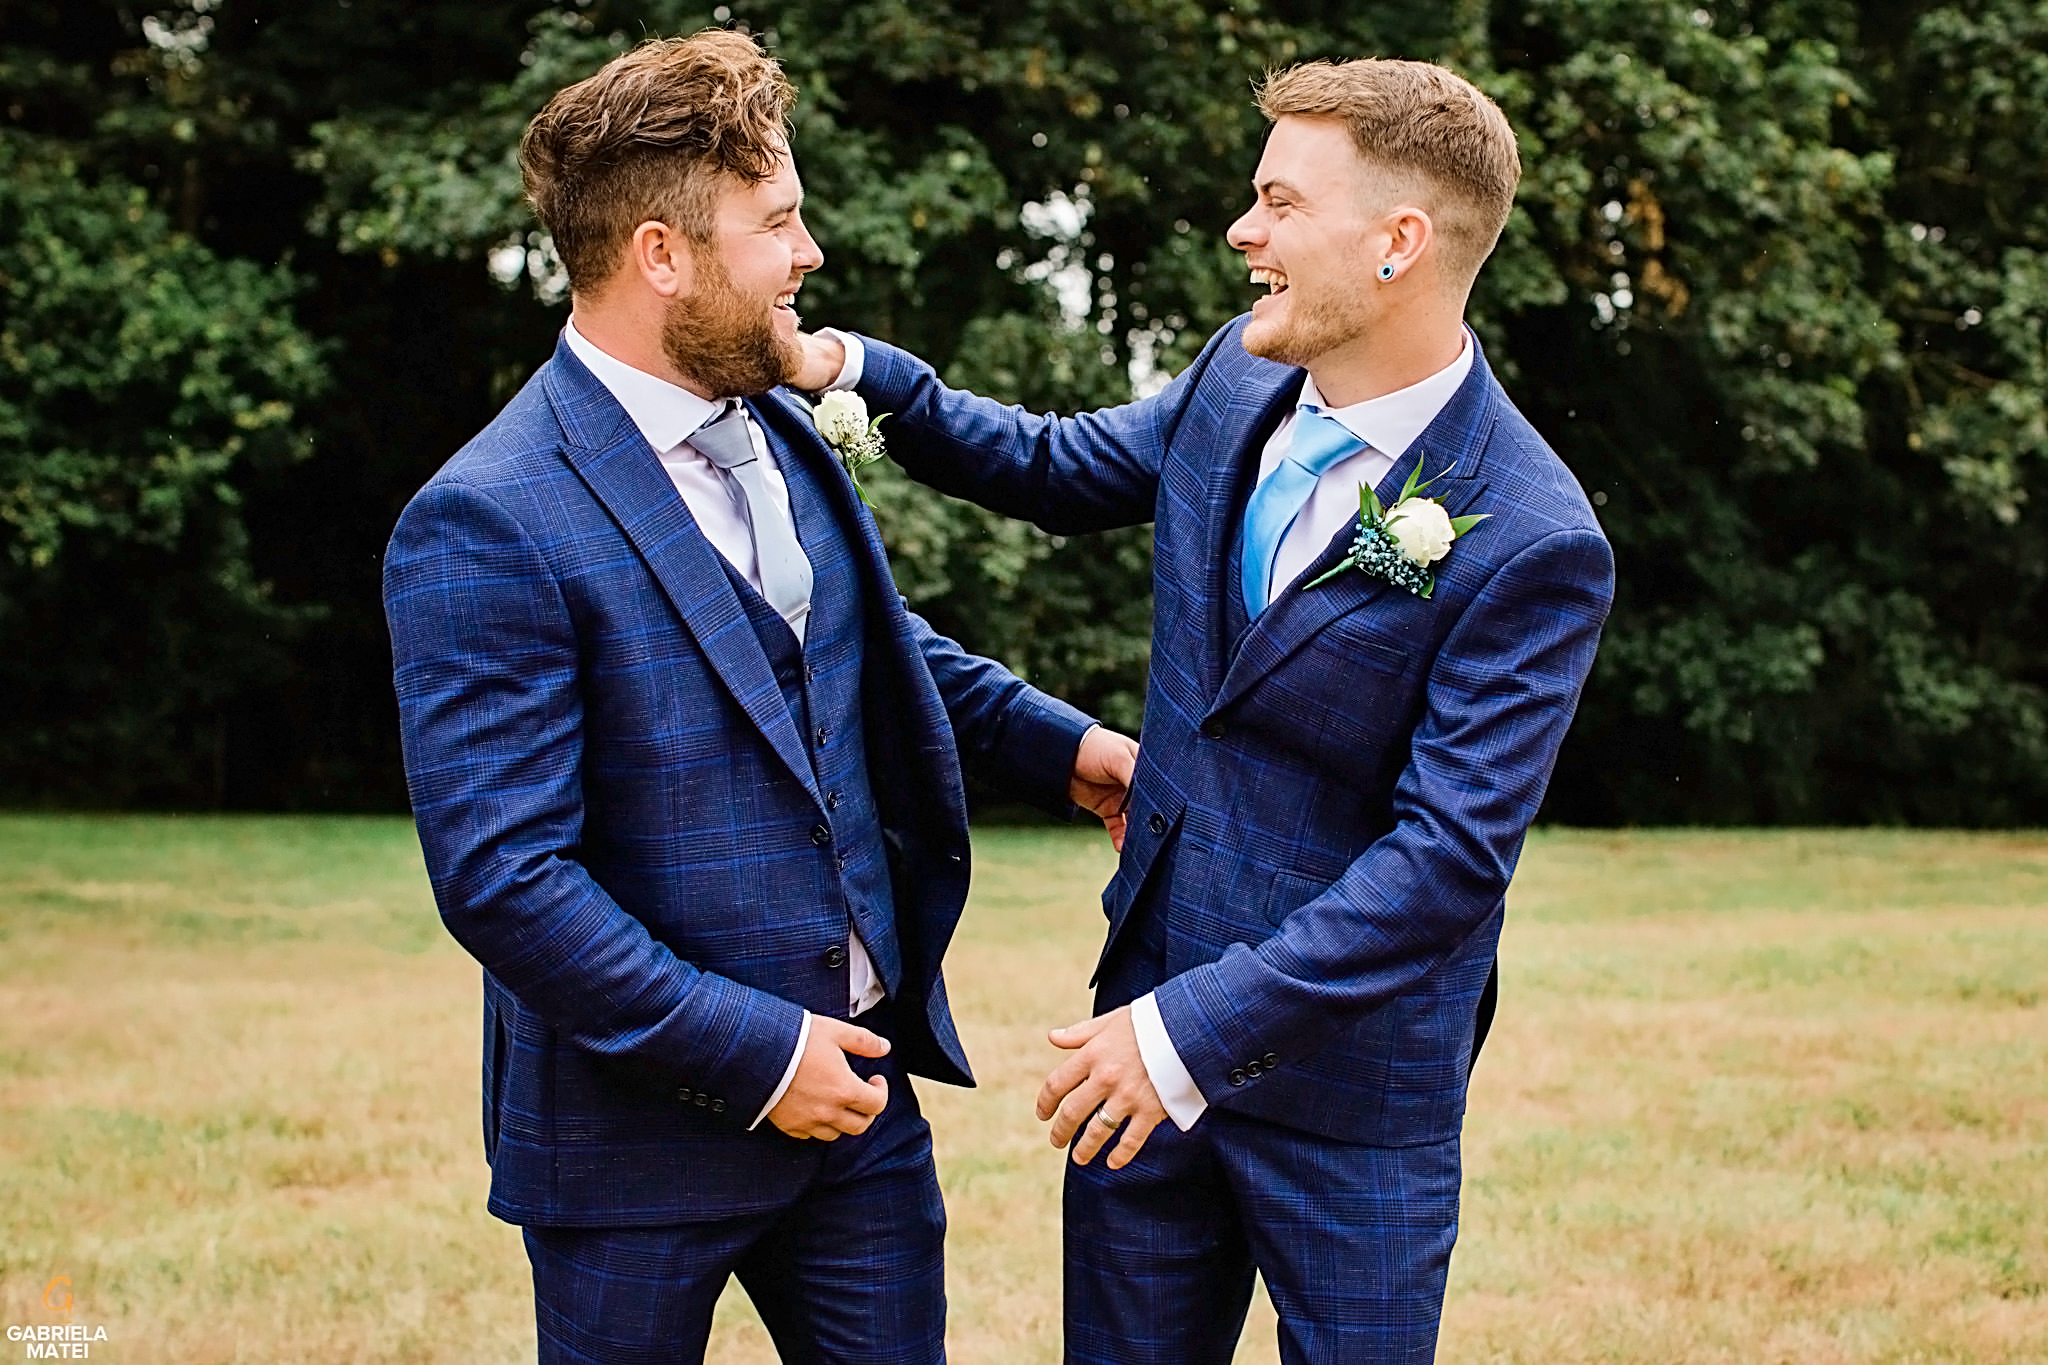 The groom and his groomsman laughing